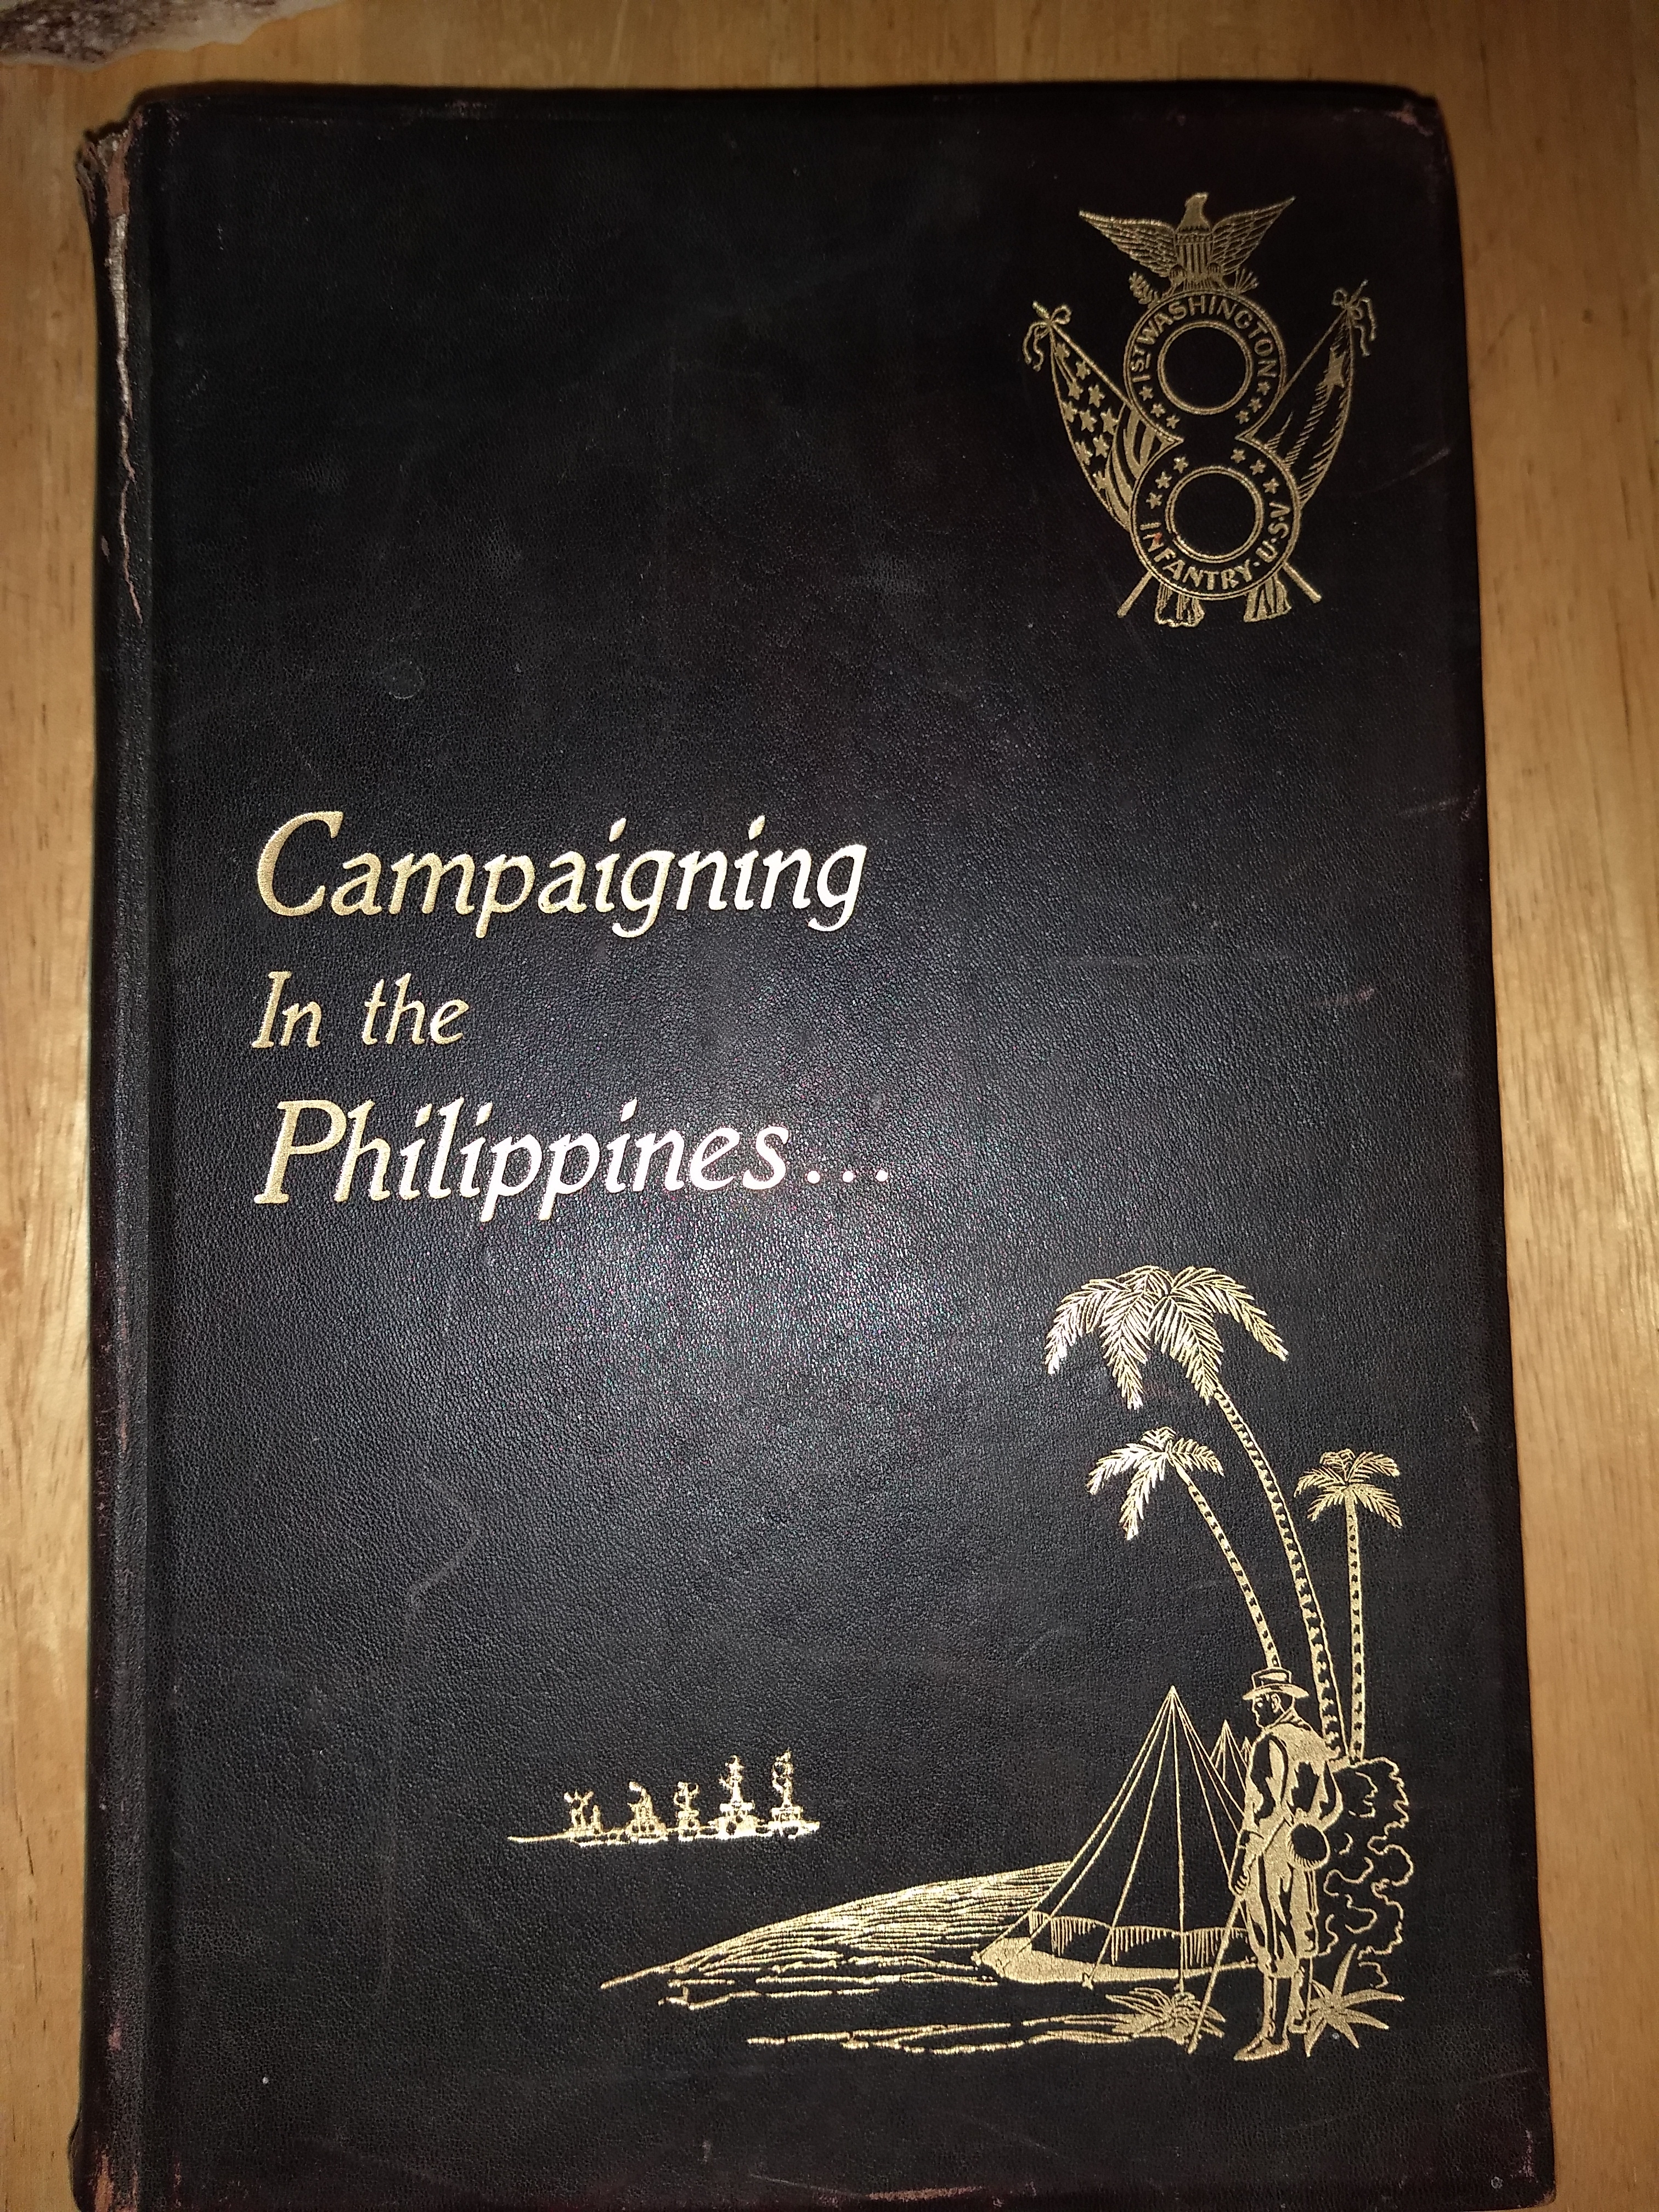 Campaigning in the Philippines